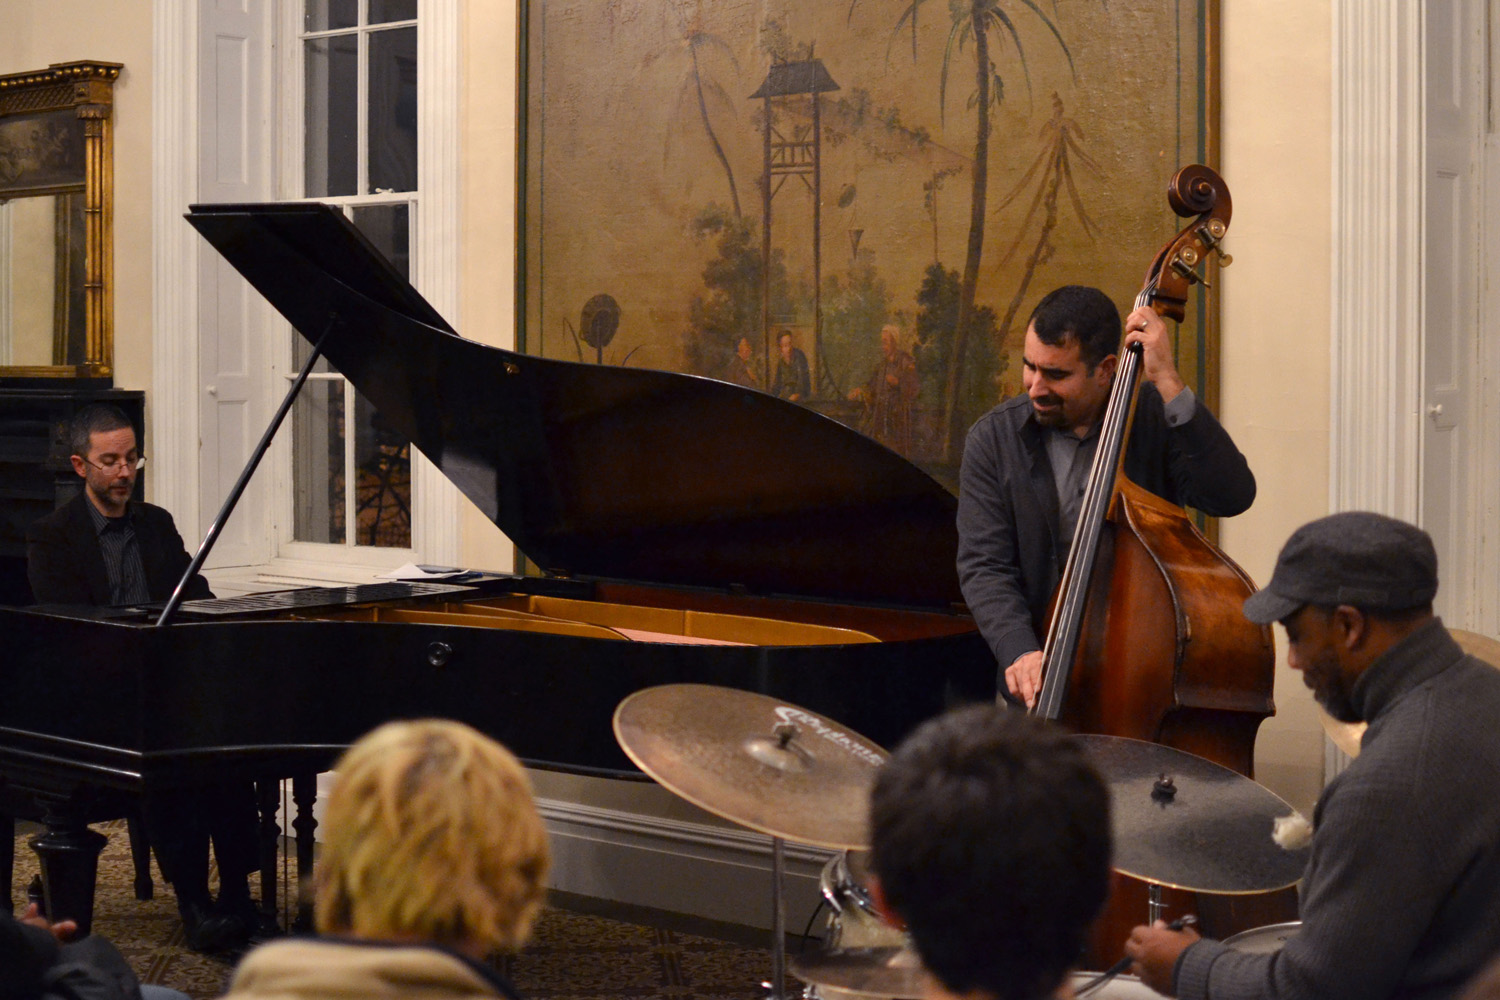 Graduate Liberal Studies hosted a combined concert and talk on Monday, November 30th entitled Monk and Mingus: The Cutting Edge of Jazz. Jazz Ensemble Coach Noah Baerman performed on piano, accompanied by bassist Henry Lugo, and Visiting Assistant Professor of Music Pheeoroan akLaff on percussion.